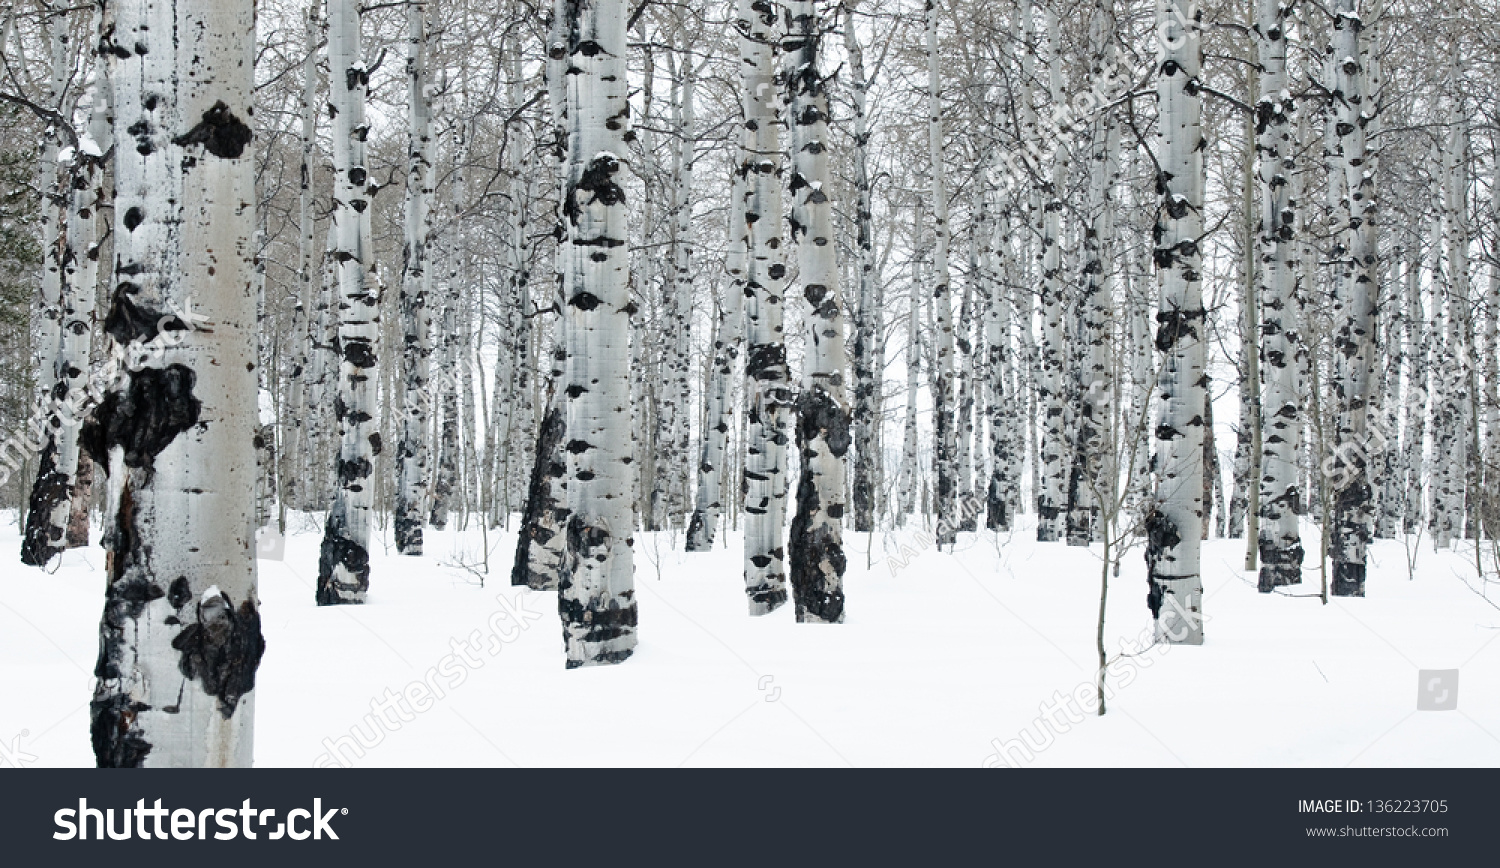 graphic view of aspen trees in winter snow covering the. Black Bedroom Furniture Sets. Home Design Ideas